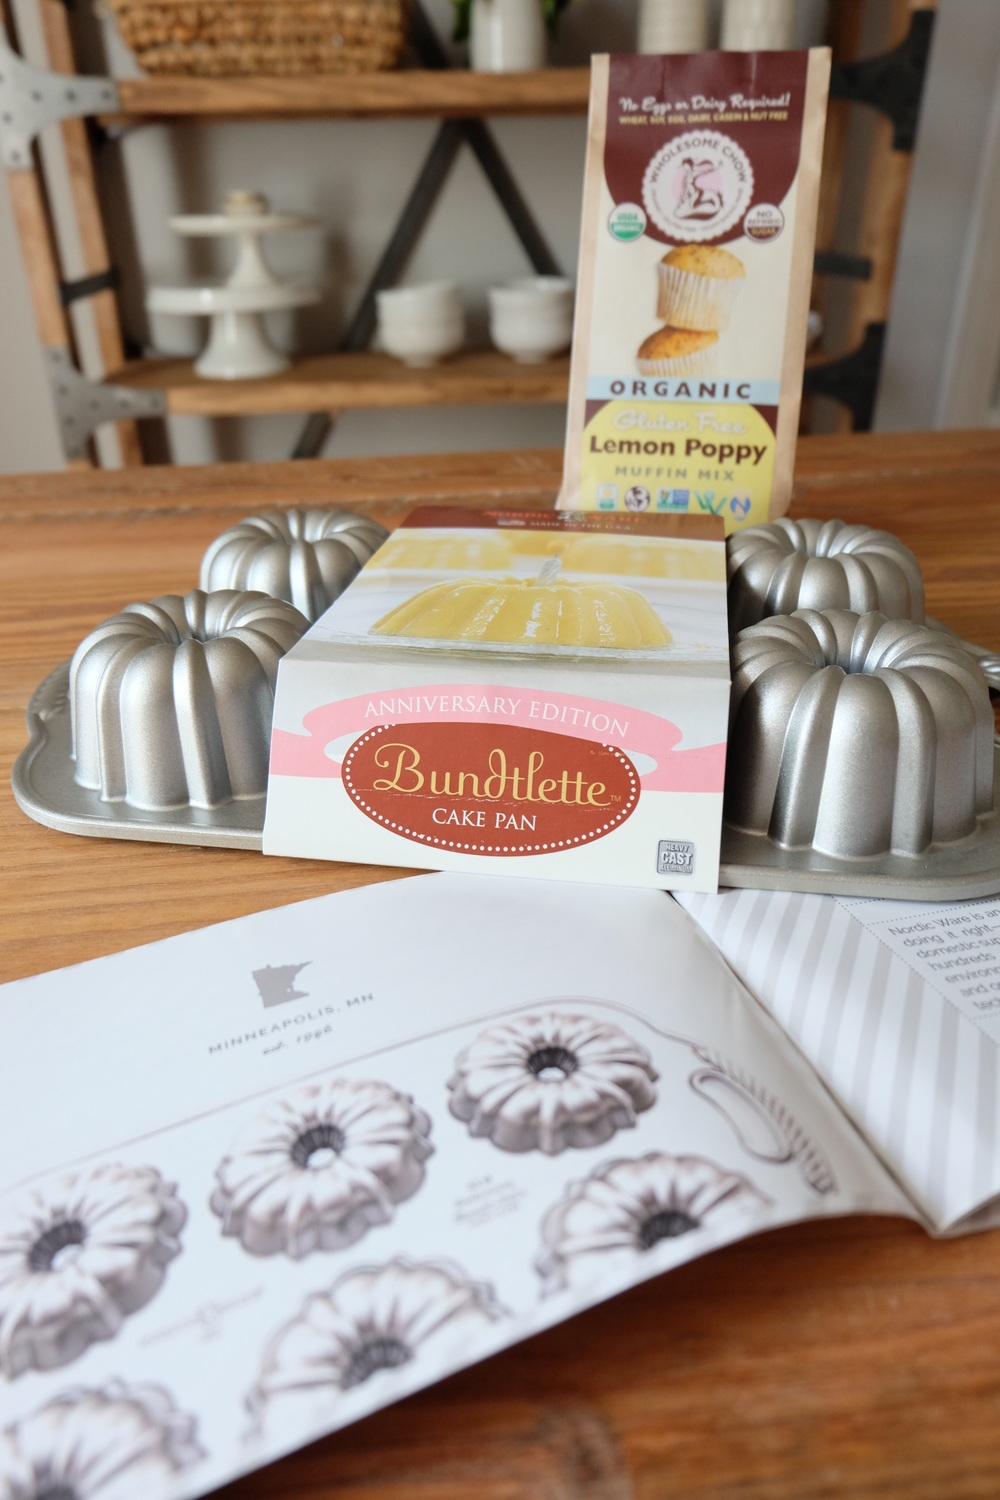 This Bundt cake pan & lemon poppy muffin mix!